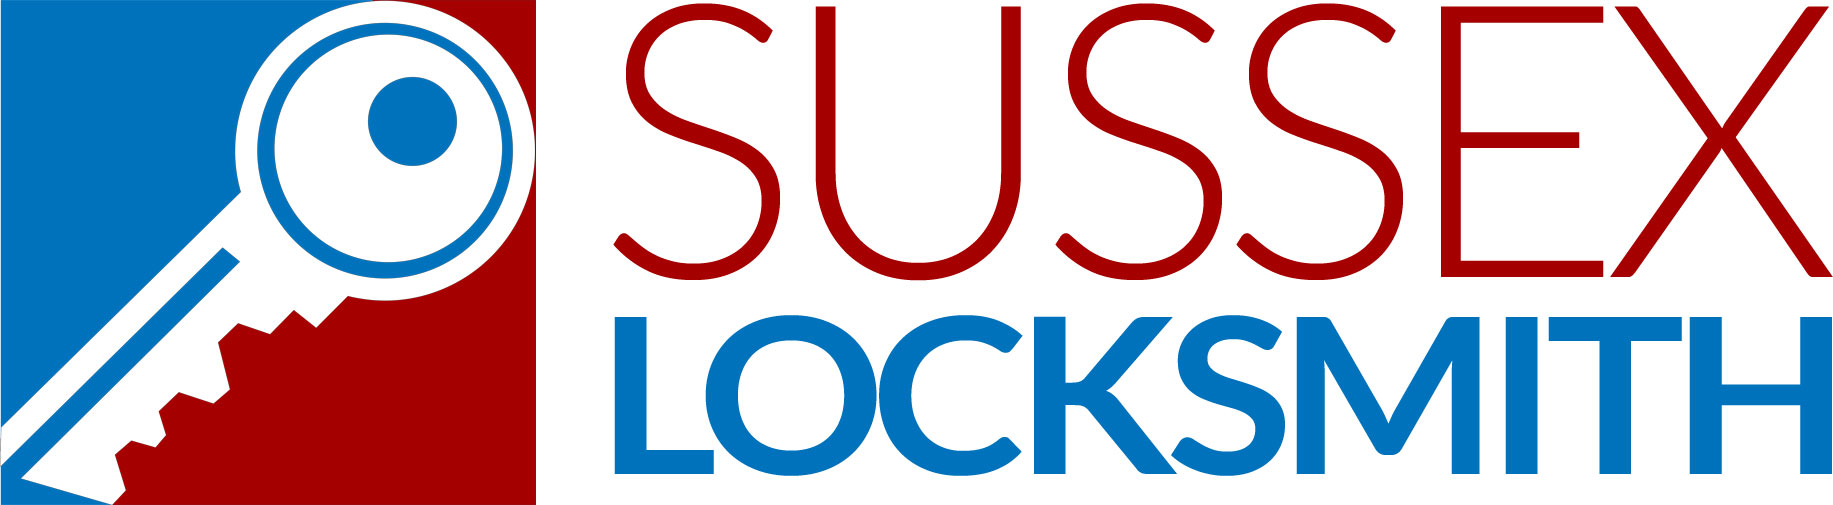 Sussex Locksmith Services